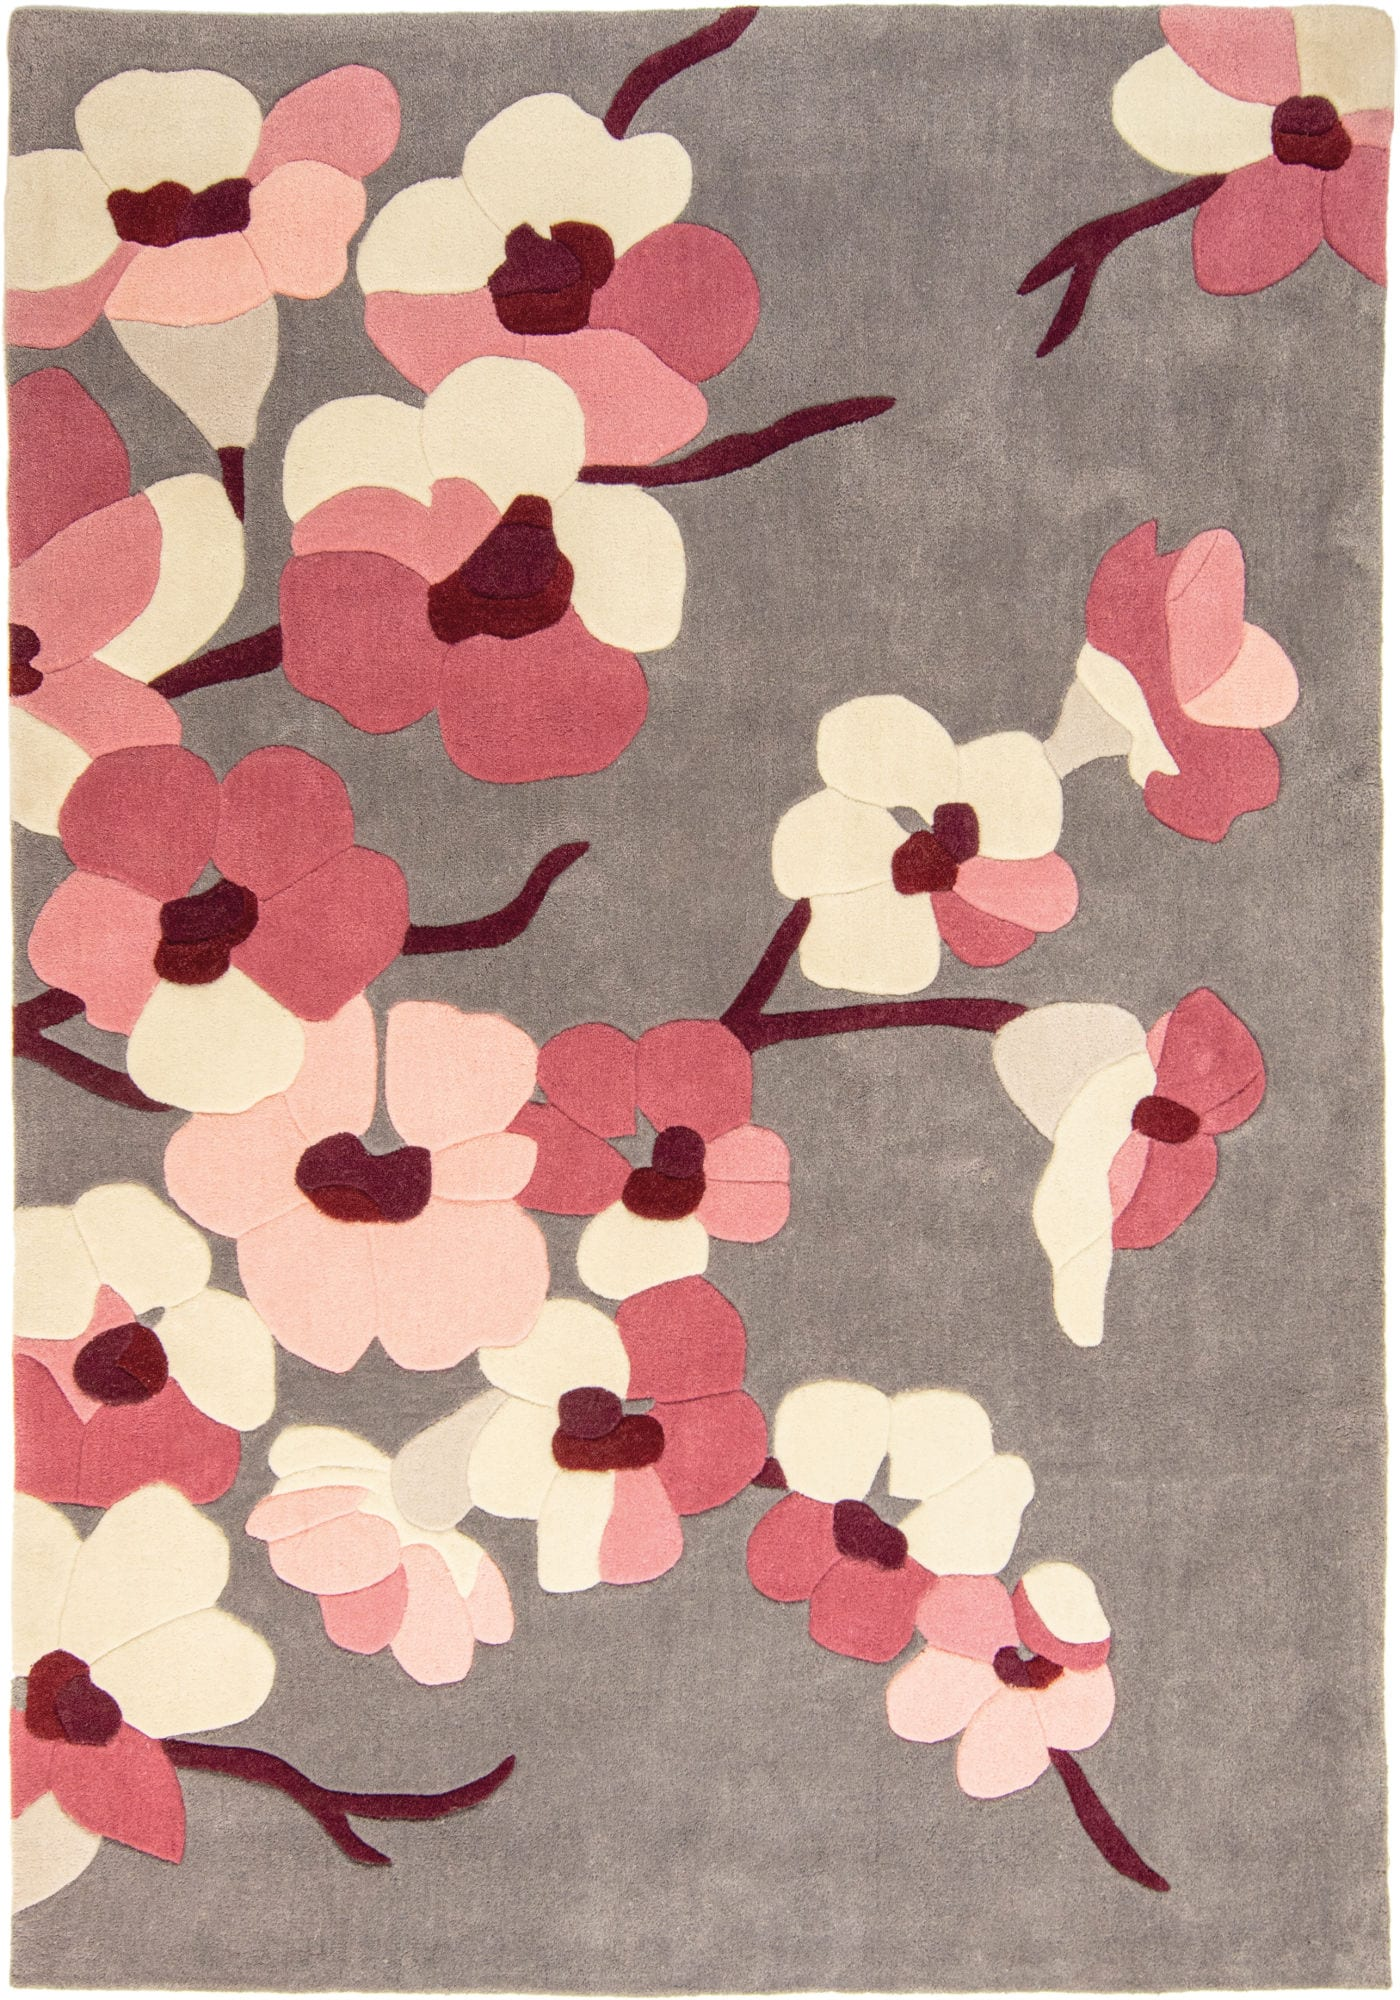 Infinite Rug By Flair Rugs in Blossom Design